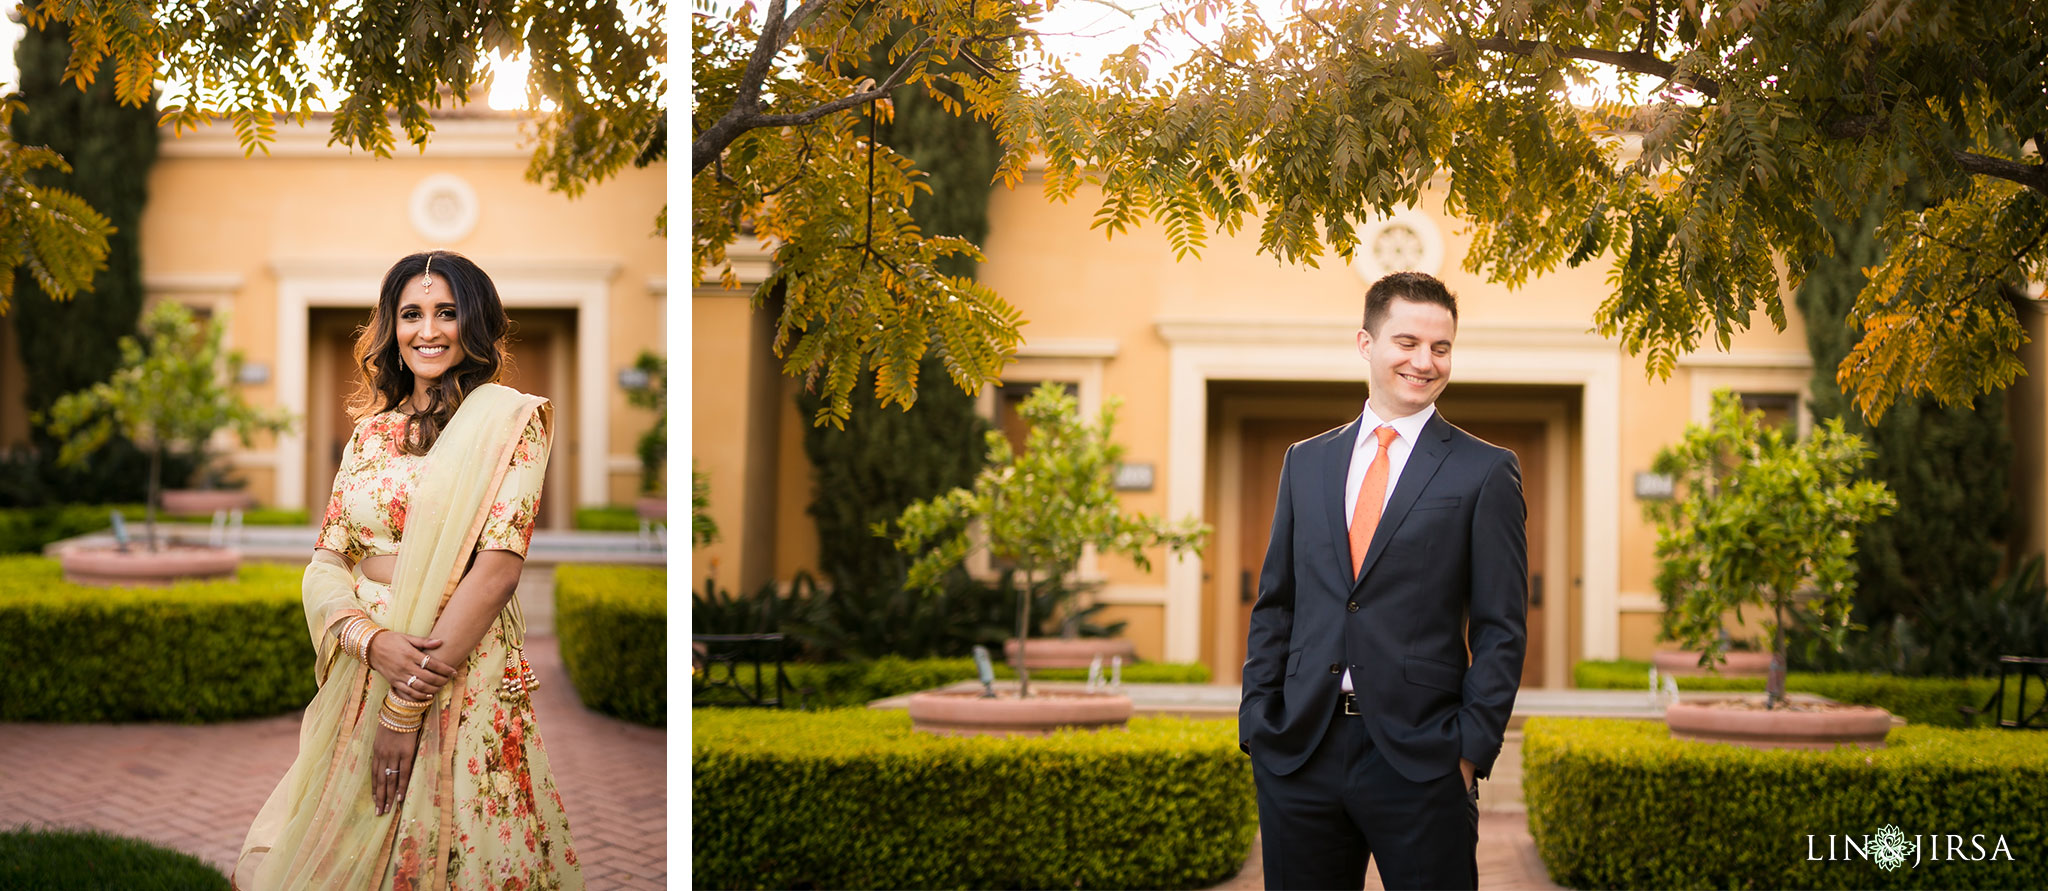 08 pelican hill indian engagement party photography